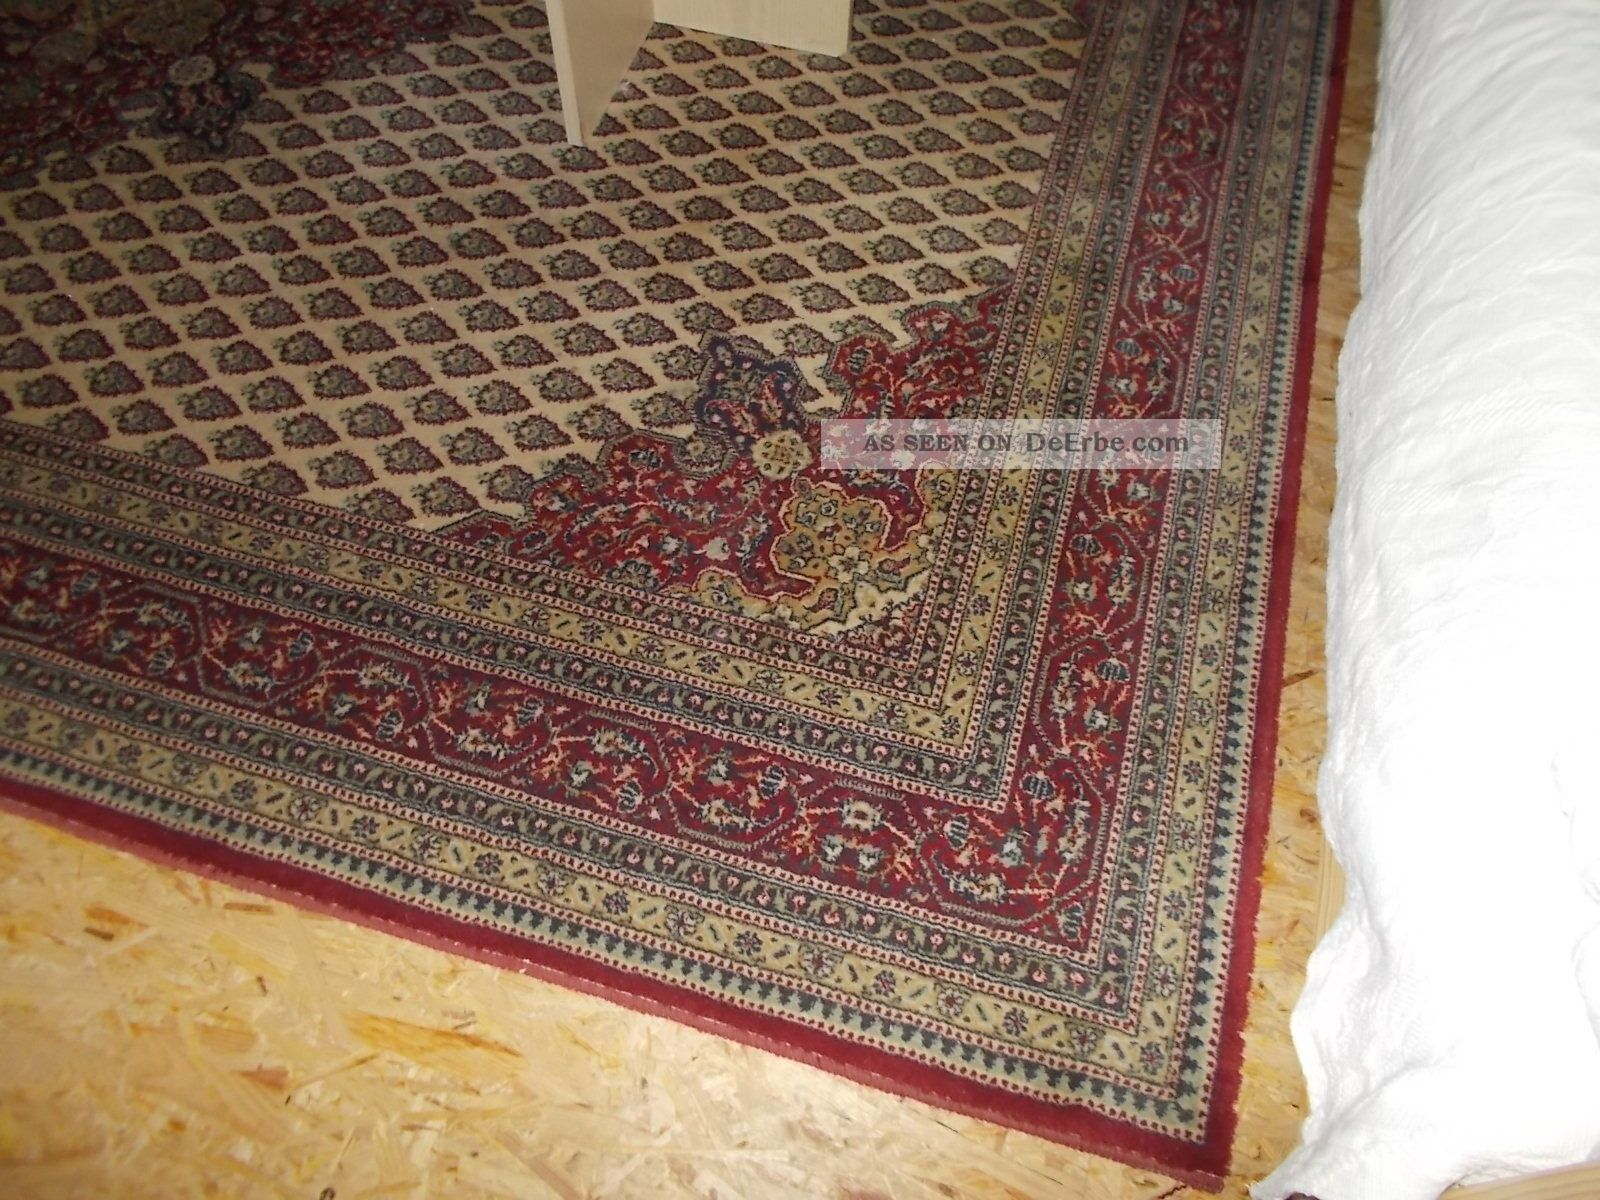 Kuhfell Teppich 200 X 300 Orient Teppich 200 X 300 Cm Schurwolle Rot Muster